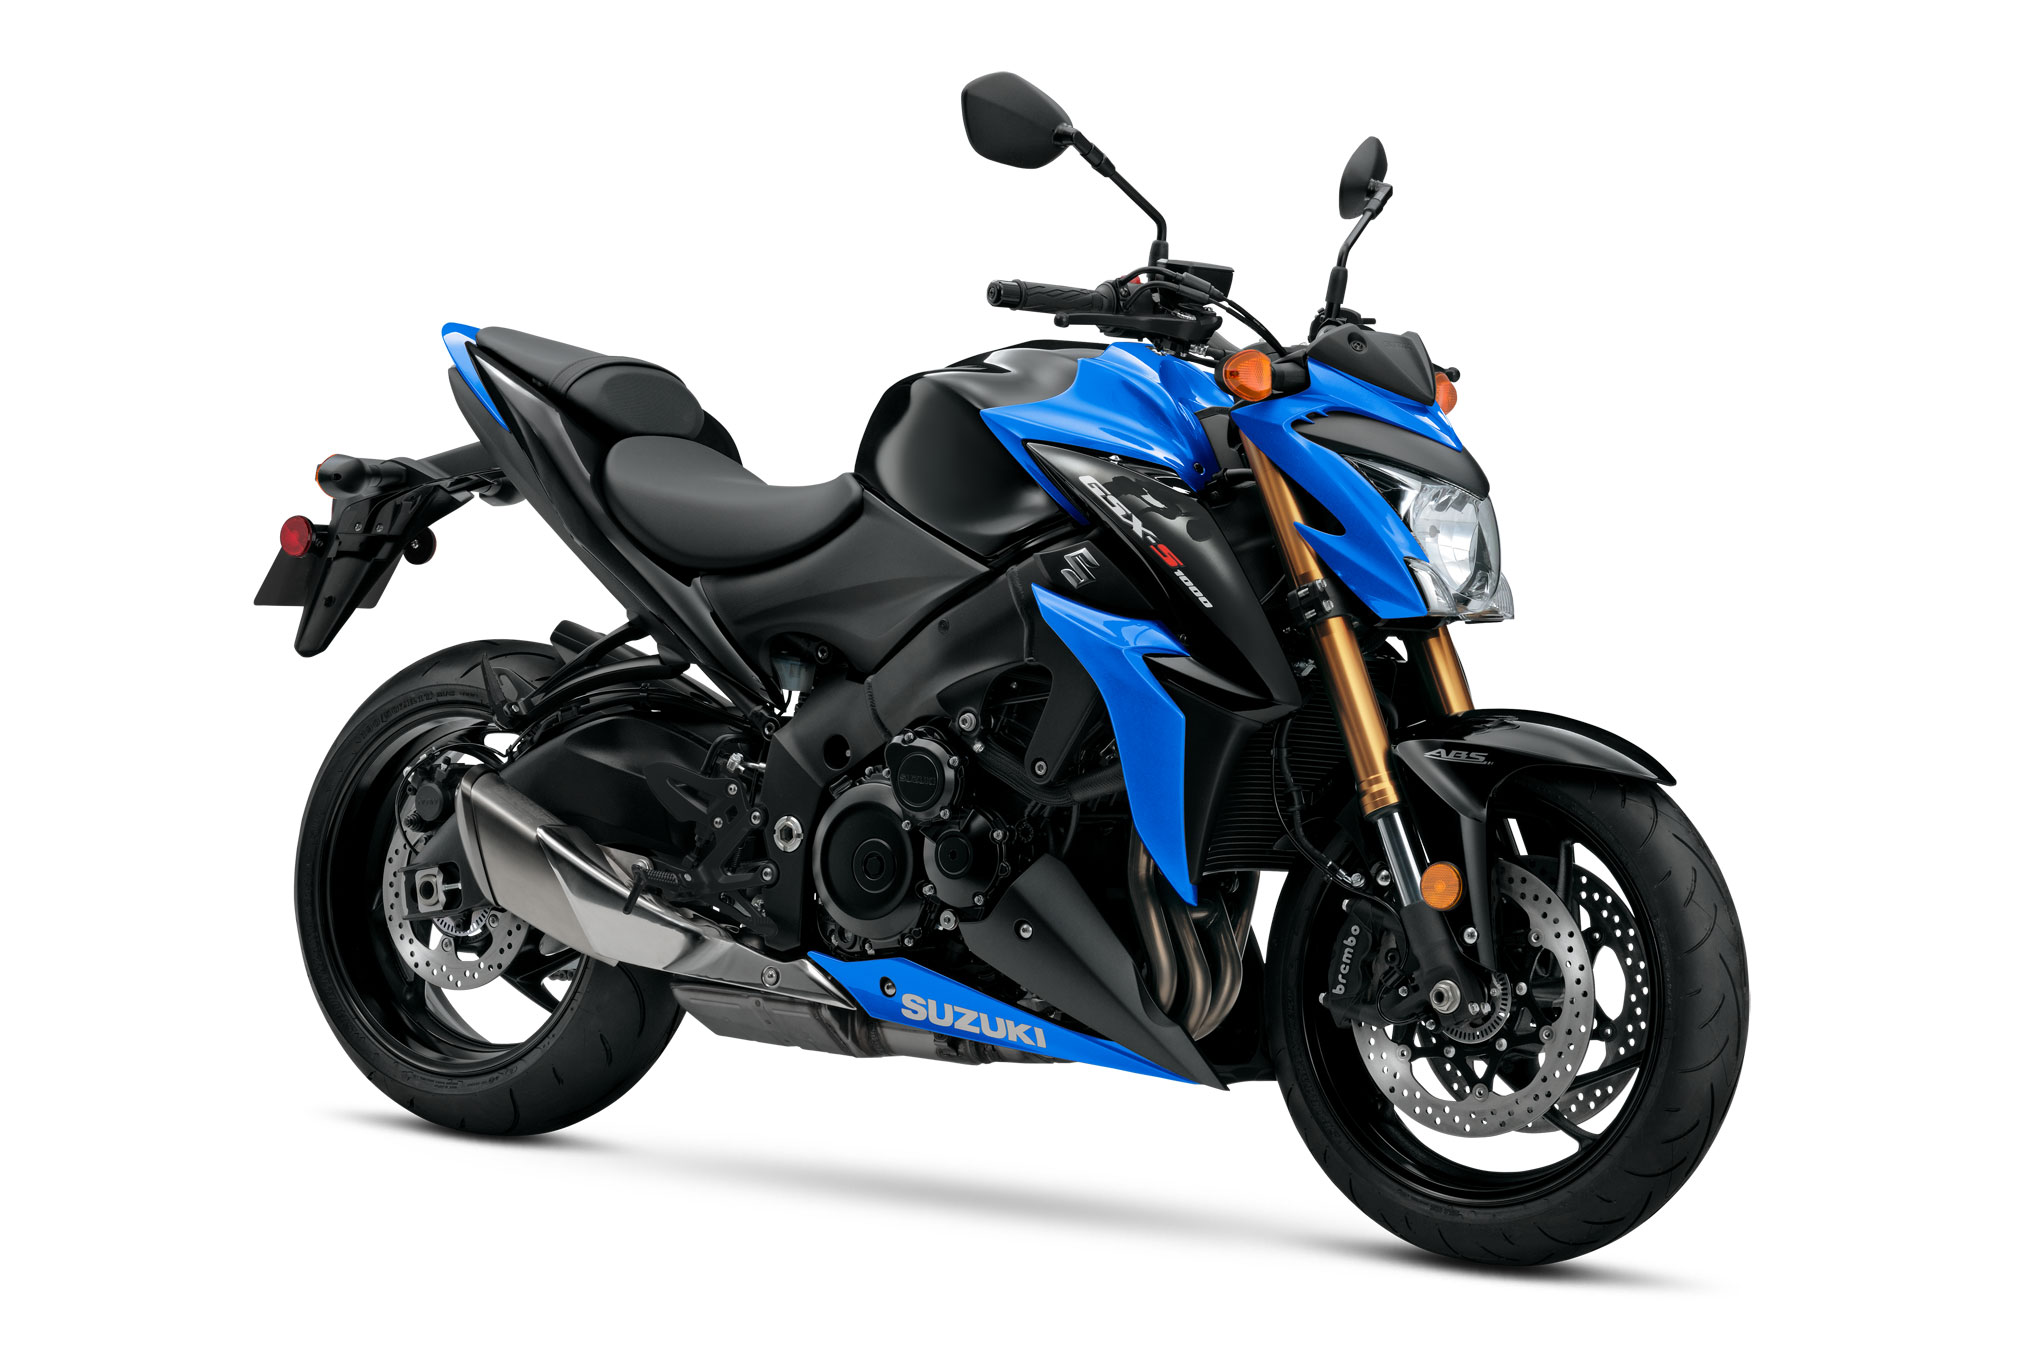 2018 Suzuki Gsx S1000 Abs Review Totalmotorcycle